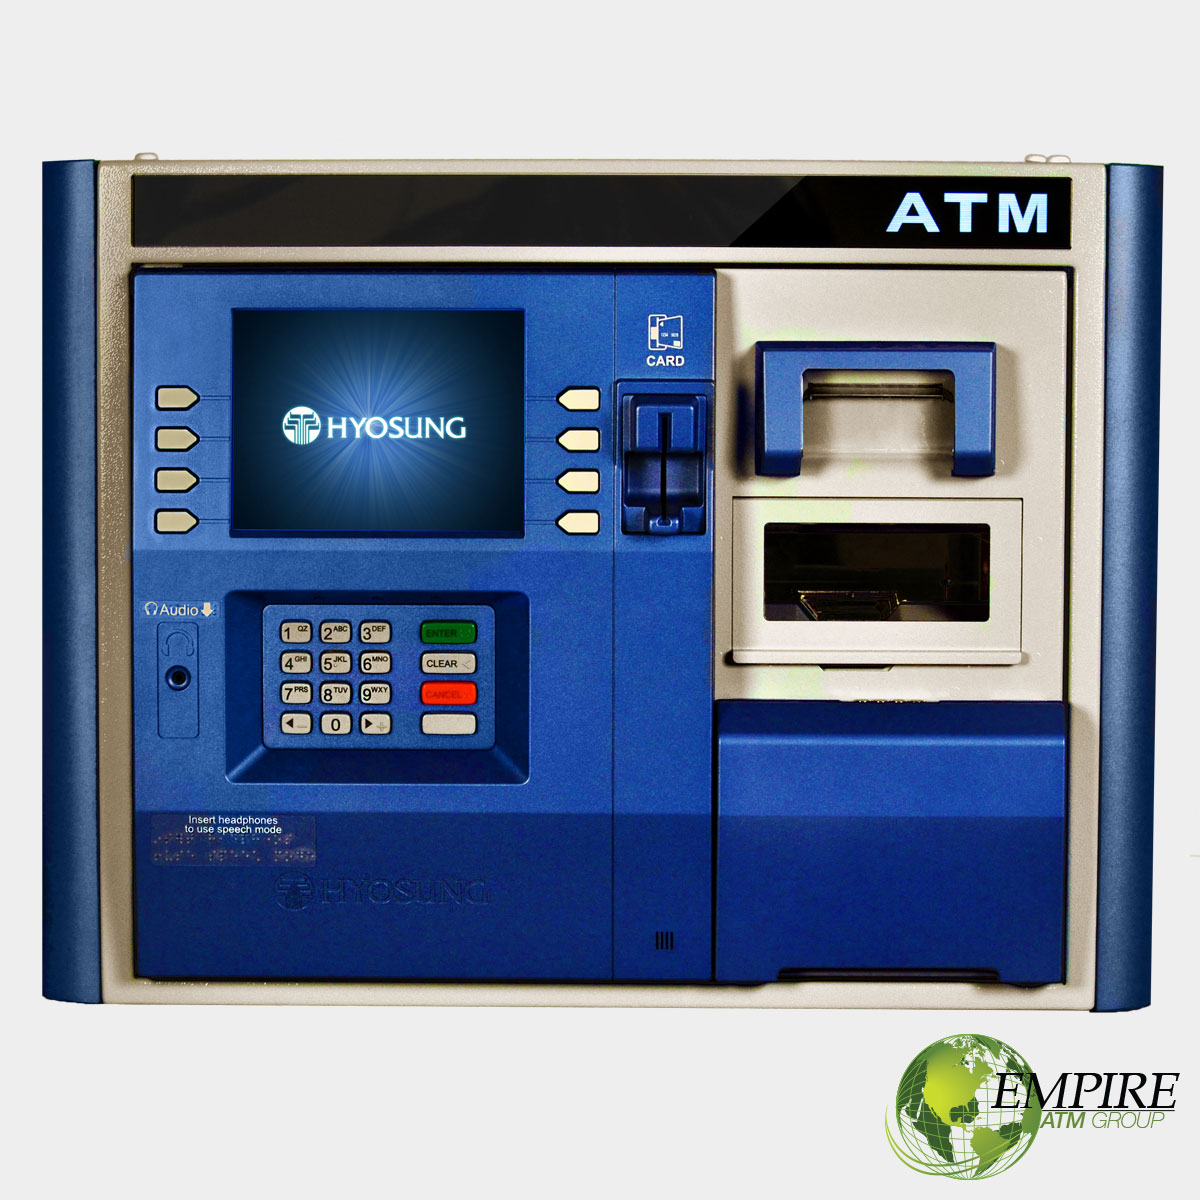 Nautilus Hyosung 4000w Atm Machine Empire Atm Group